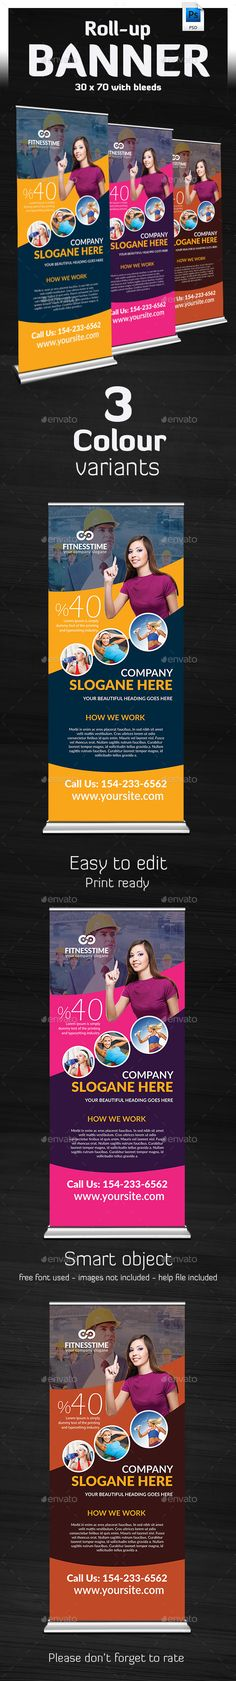 Takatuka - Business Roll Up Banner Template #design Download: http://graphicriver.net/item/takatuka-business-roll-up-banner-/13125094?ref=ksioks